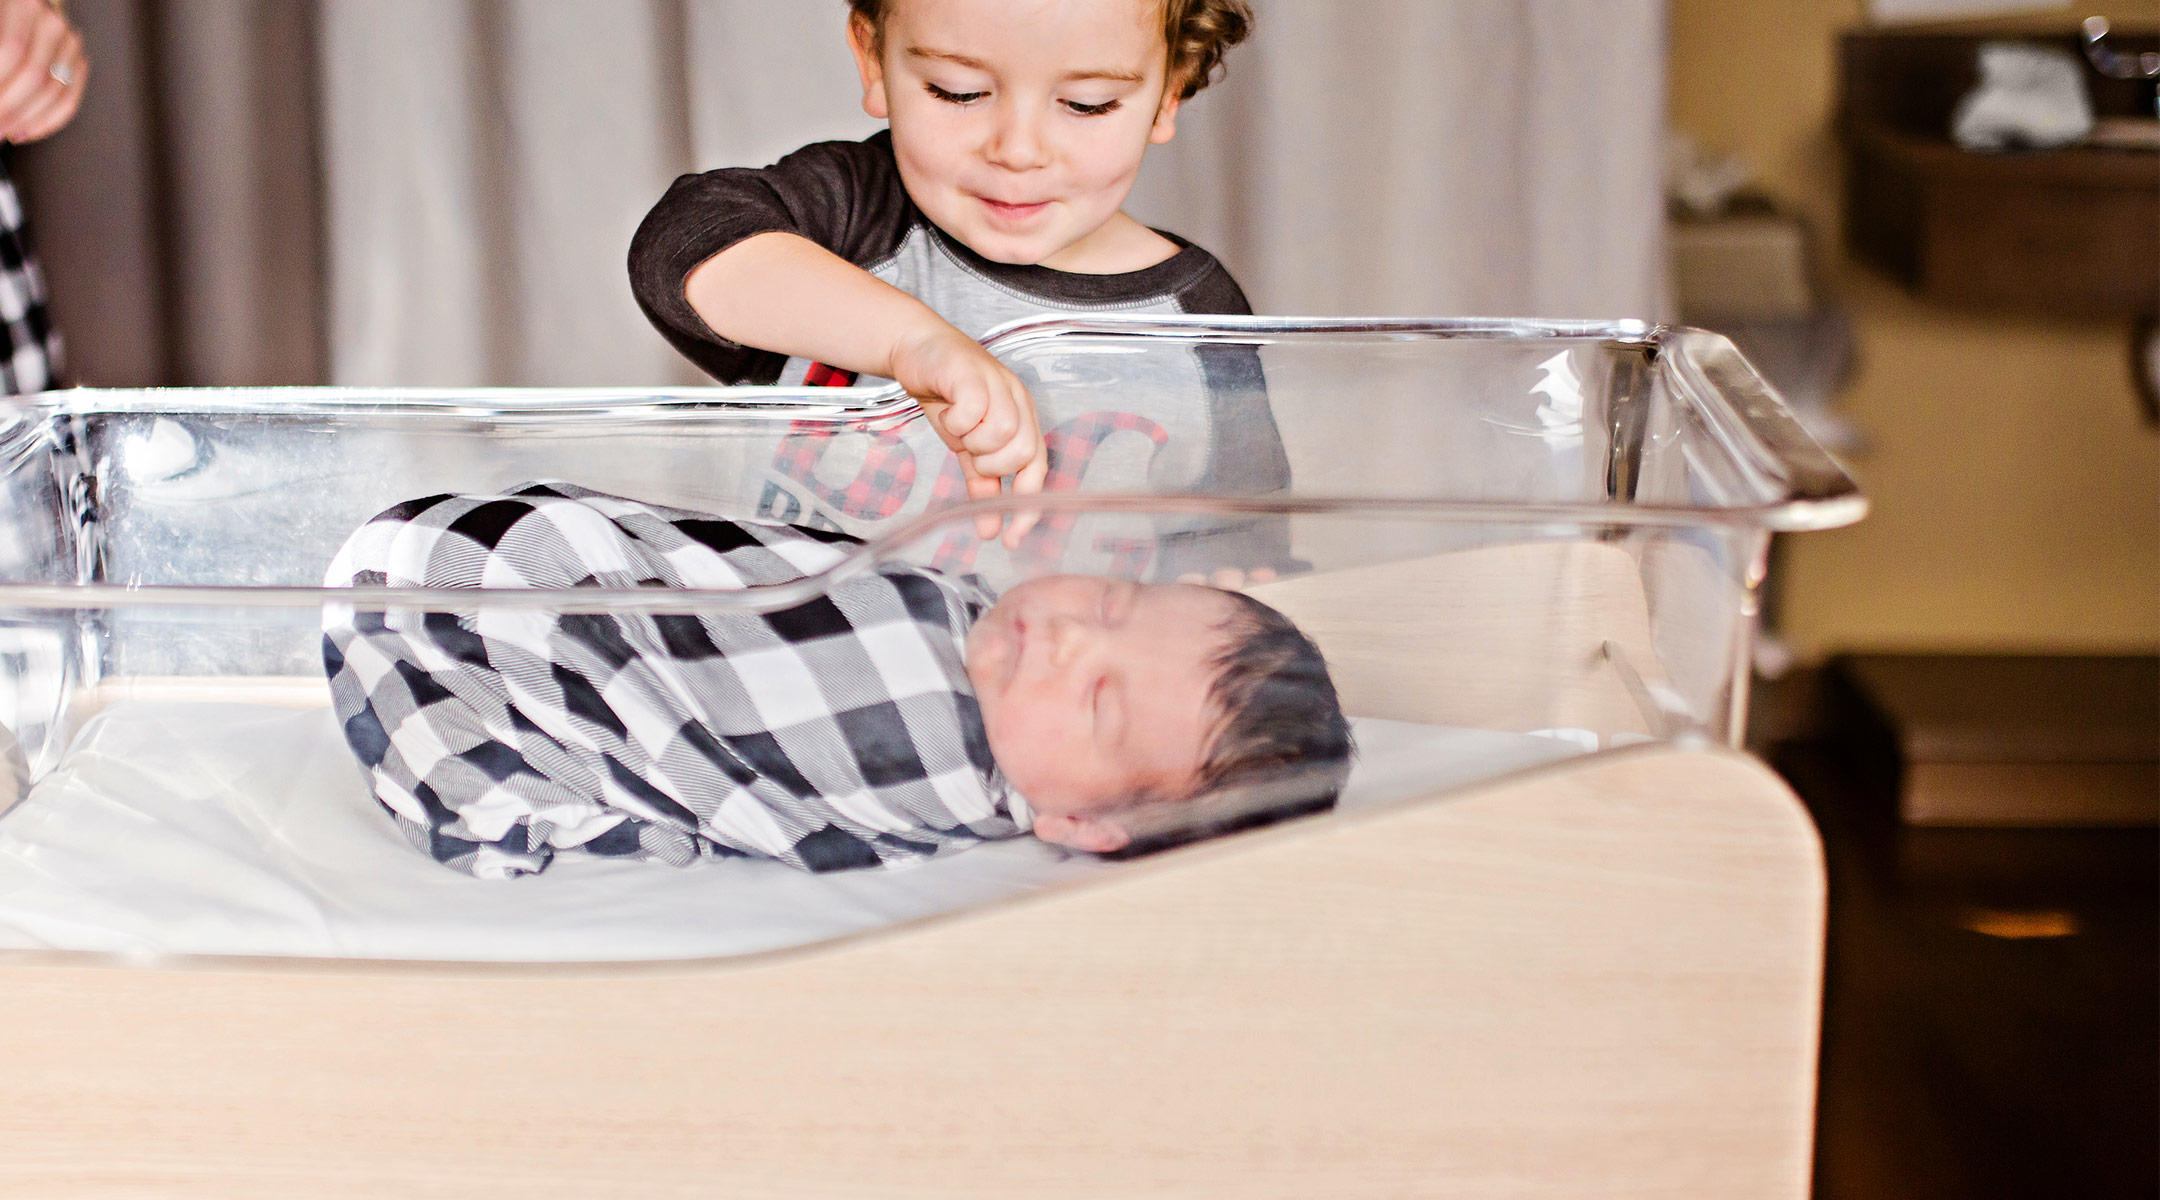 10 Sweet New Sibling Gifts from Baby.